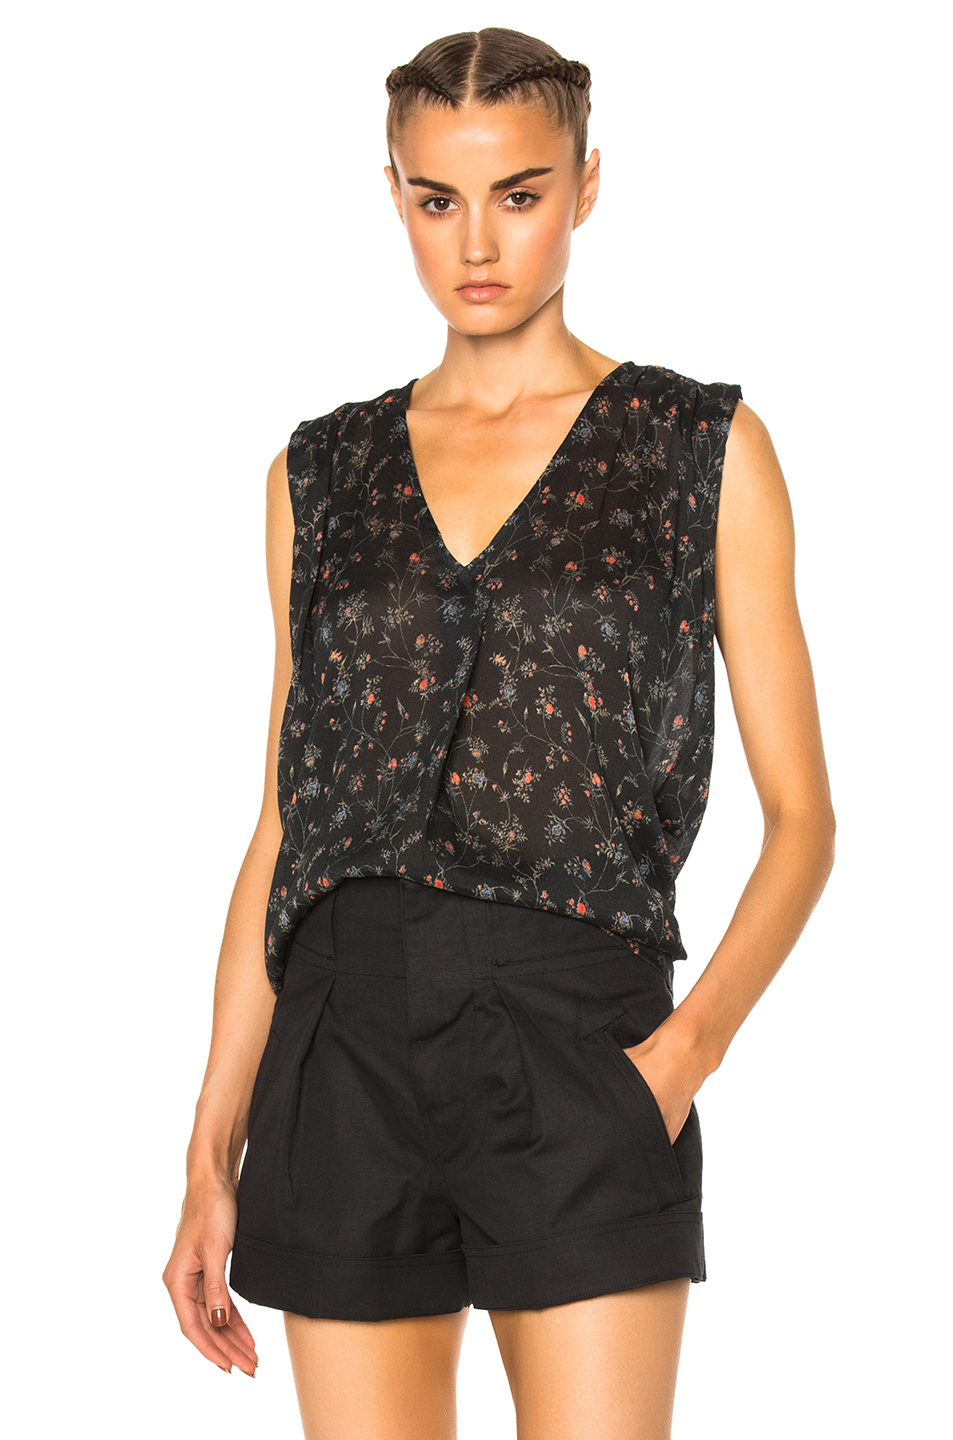 Isabel Marant Torrell Blouse in Floral,Green